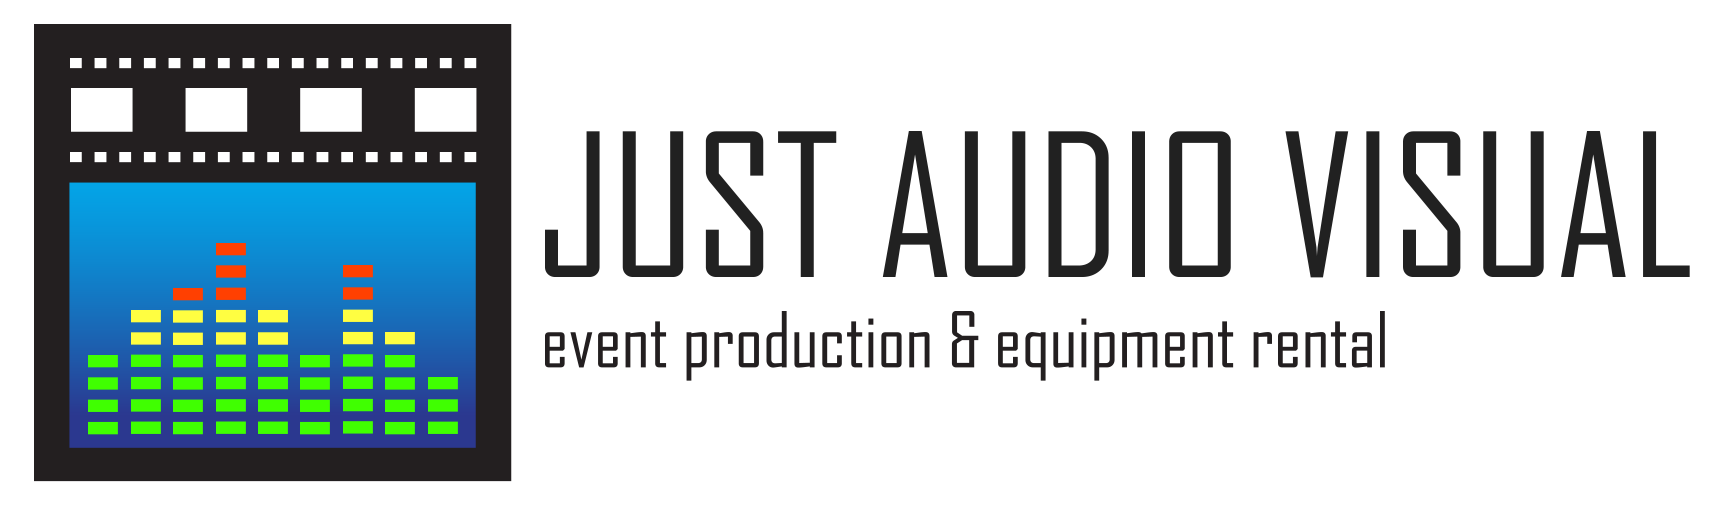 Event Production Services & Equipment Rentals - Just AV